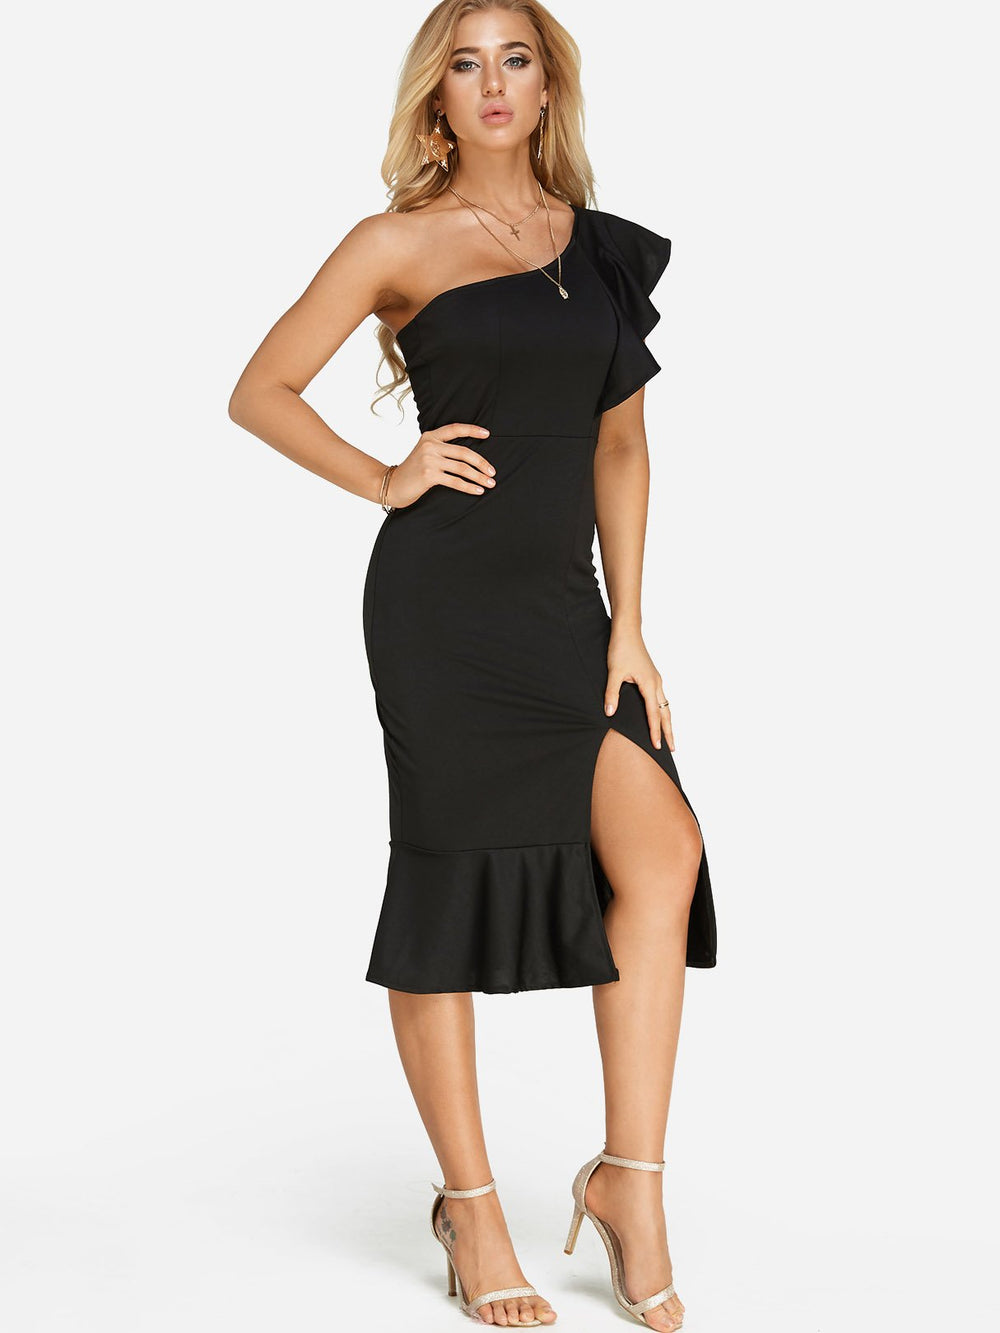 Ladies Sleeveless Sexy Dresses